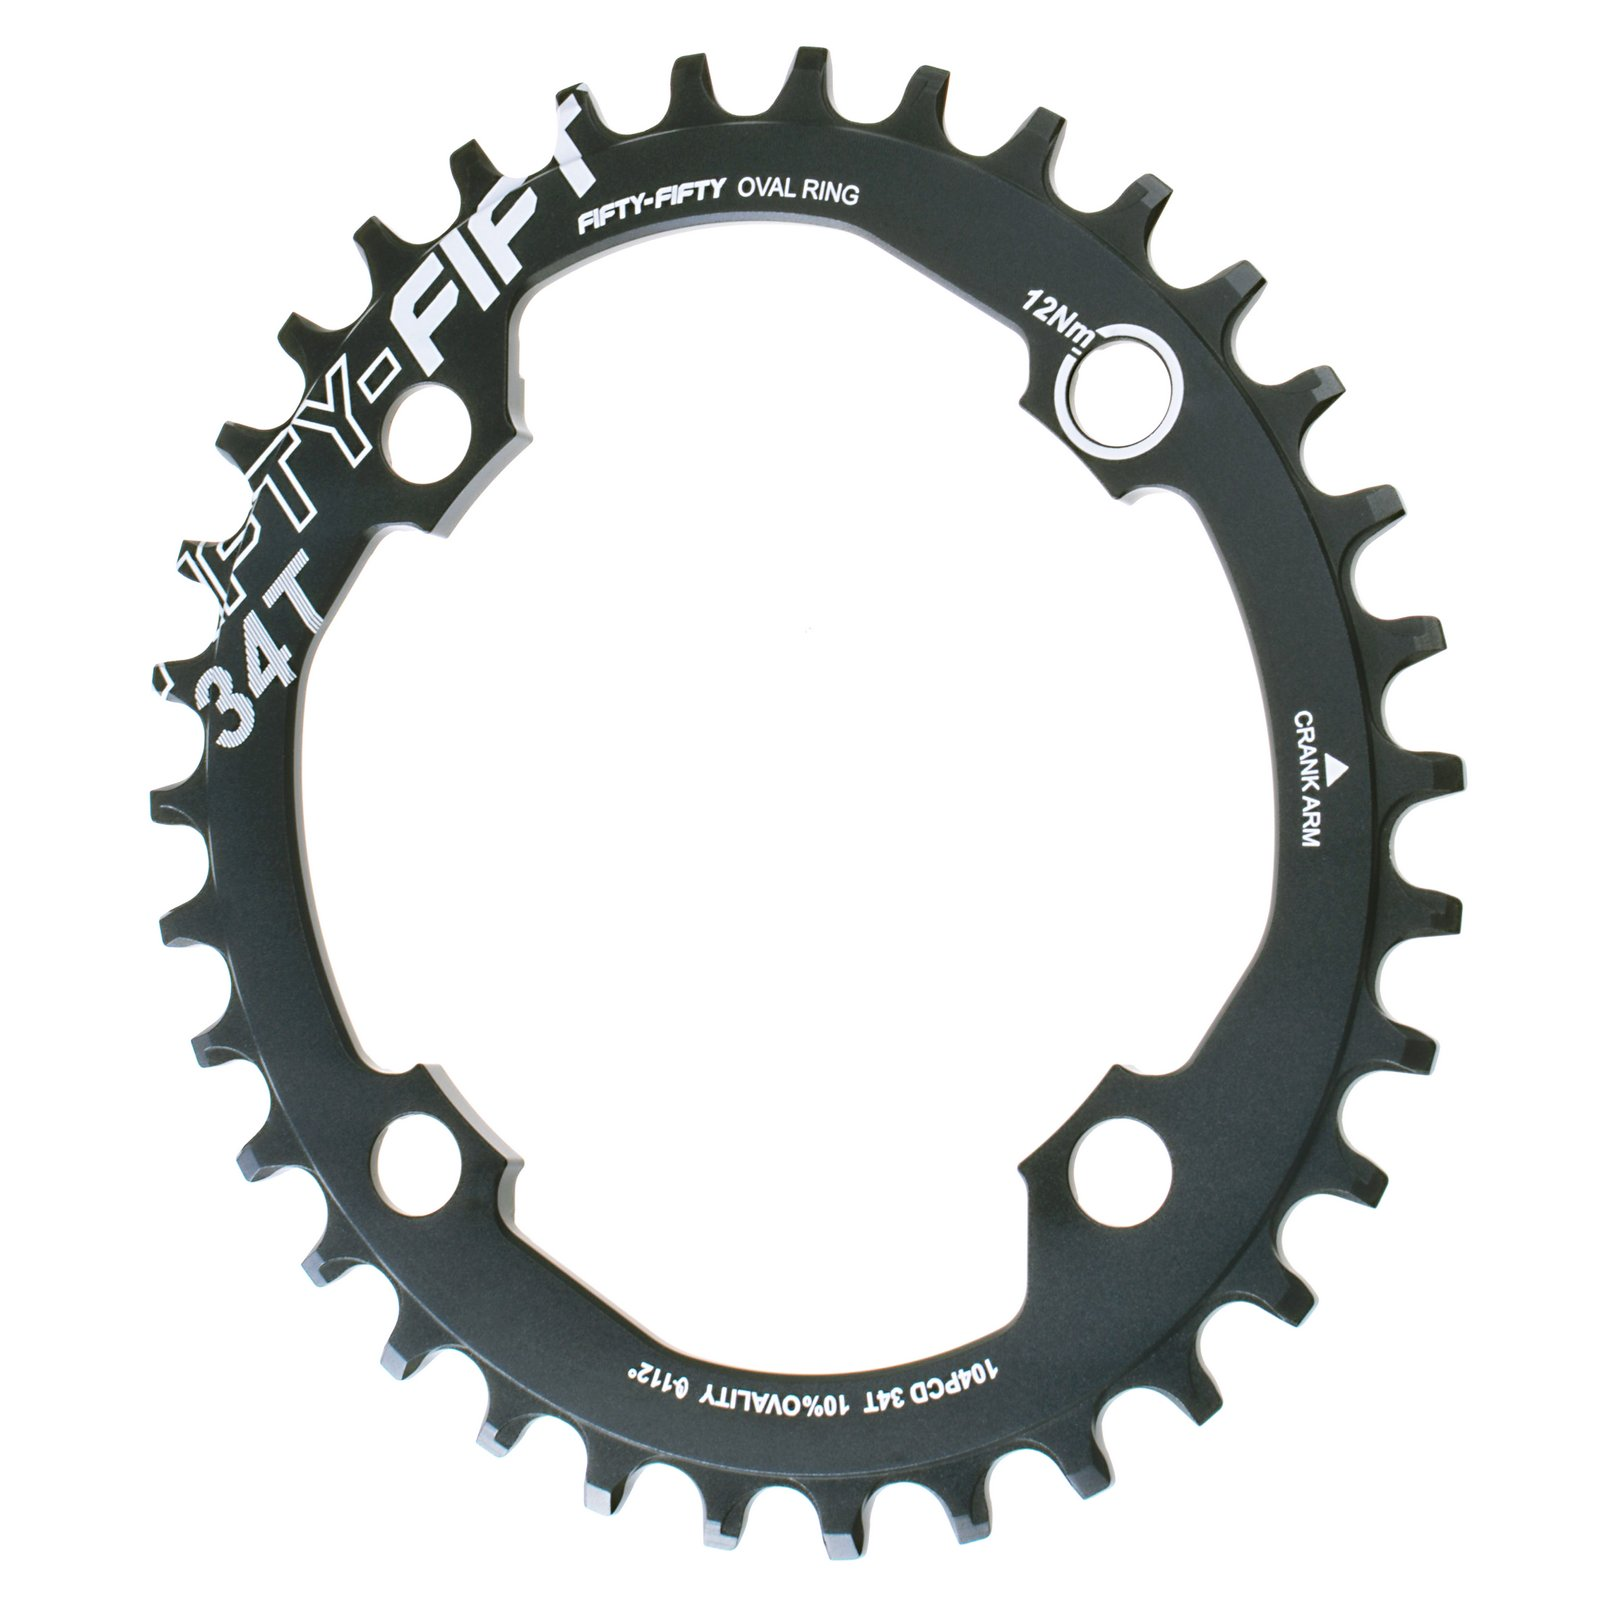 FIFTY-FIFTY Mountain Bike  MTB Bicycle Chainwheel 104PCD Ovalrings 32T 34T 36T 9/10/11S Chain Ring fouriers mtb mountain bikes chainring mountain bike mtb bicycle chain ring xt r m9000 m9020 xt m8000 11s chainwheel